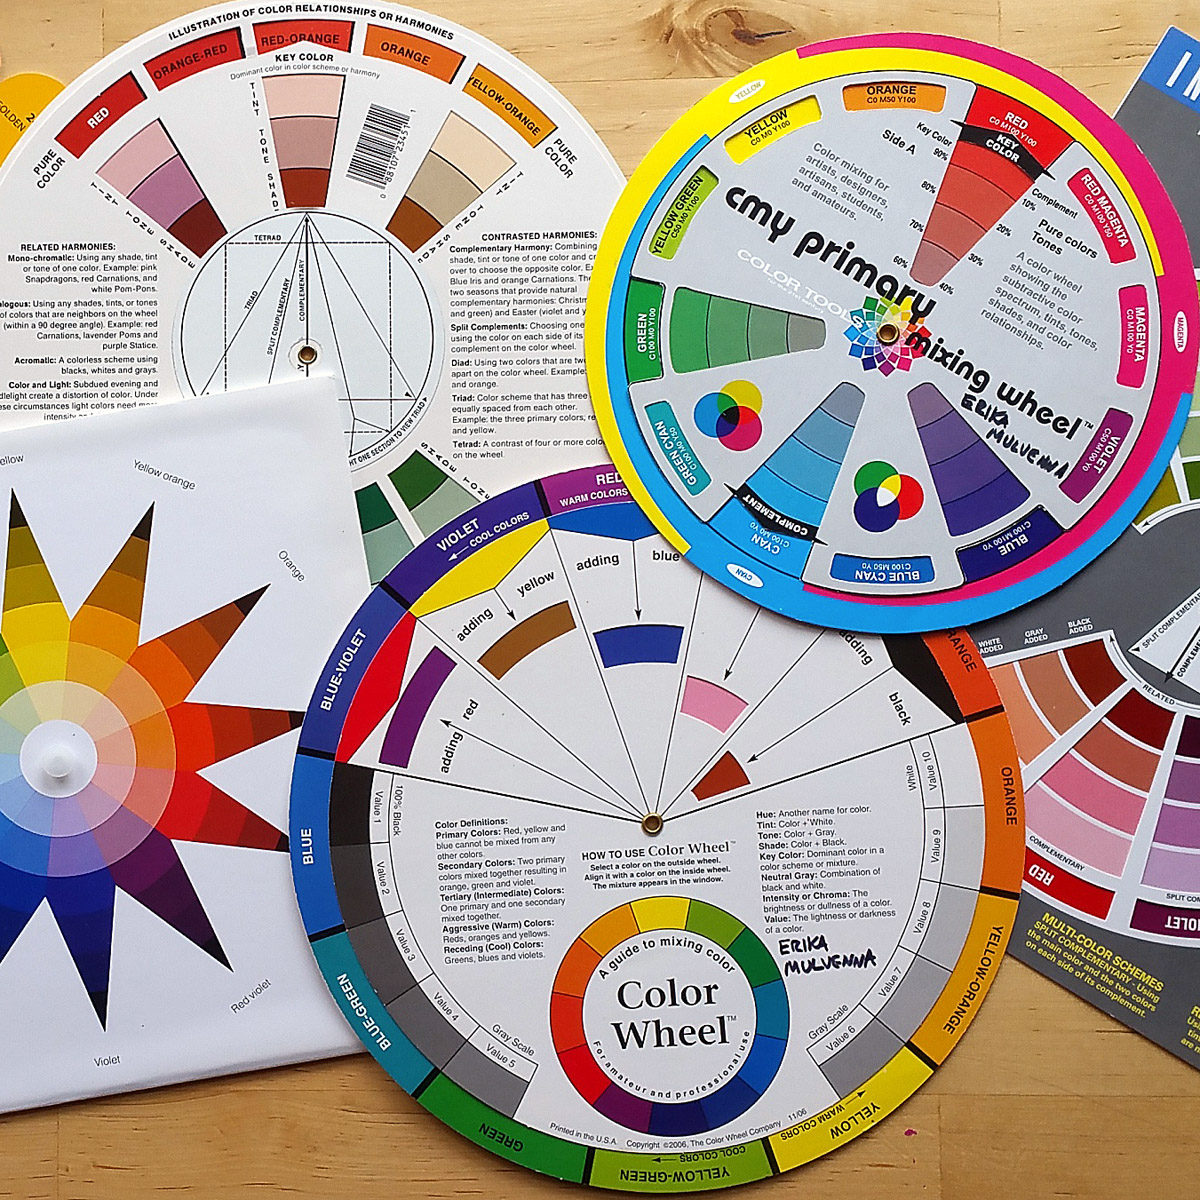 Color Wheel Basics